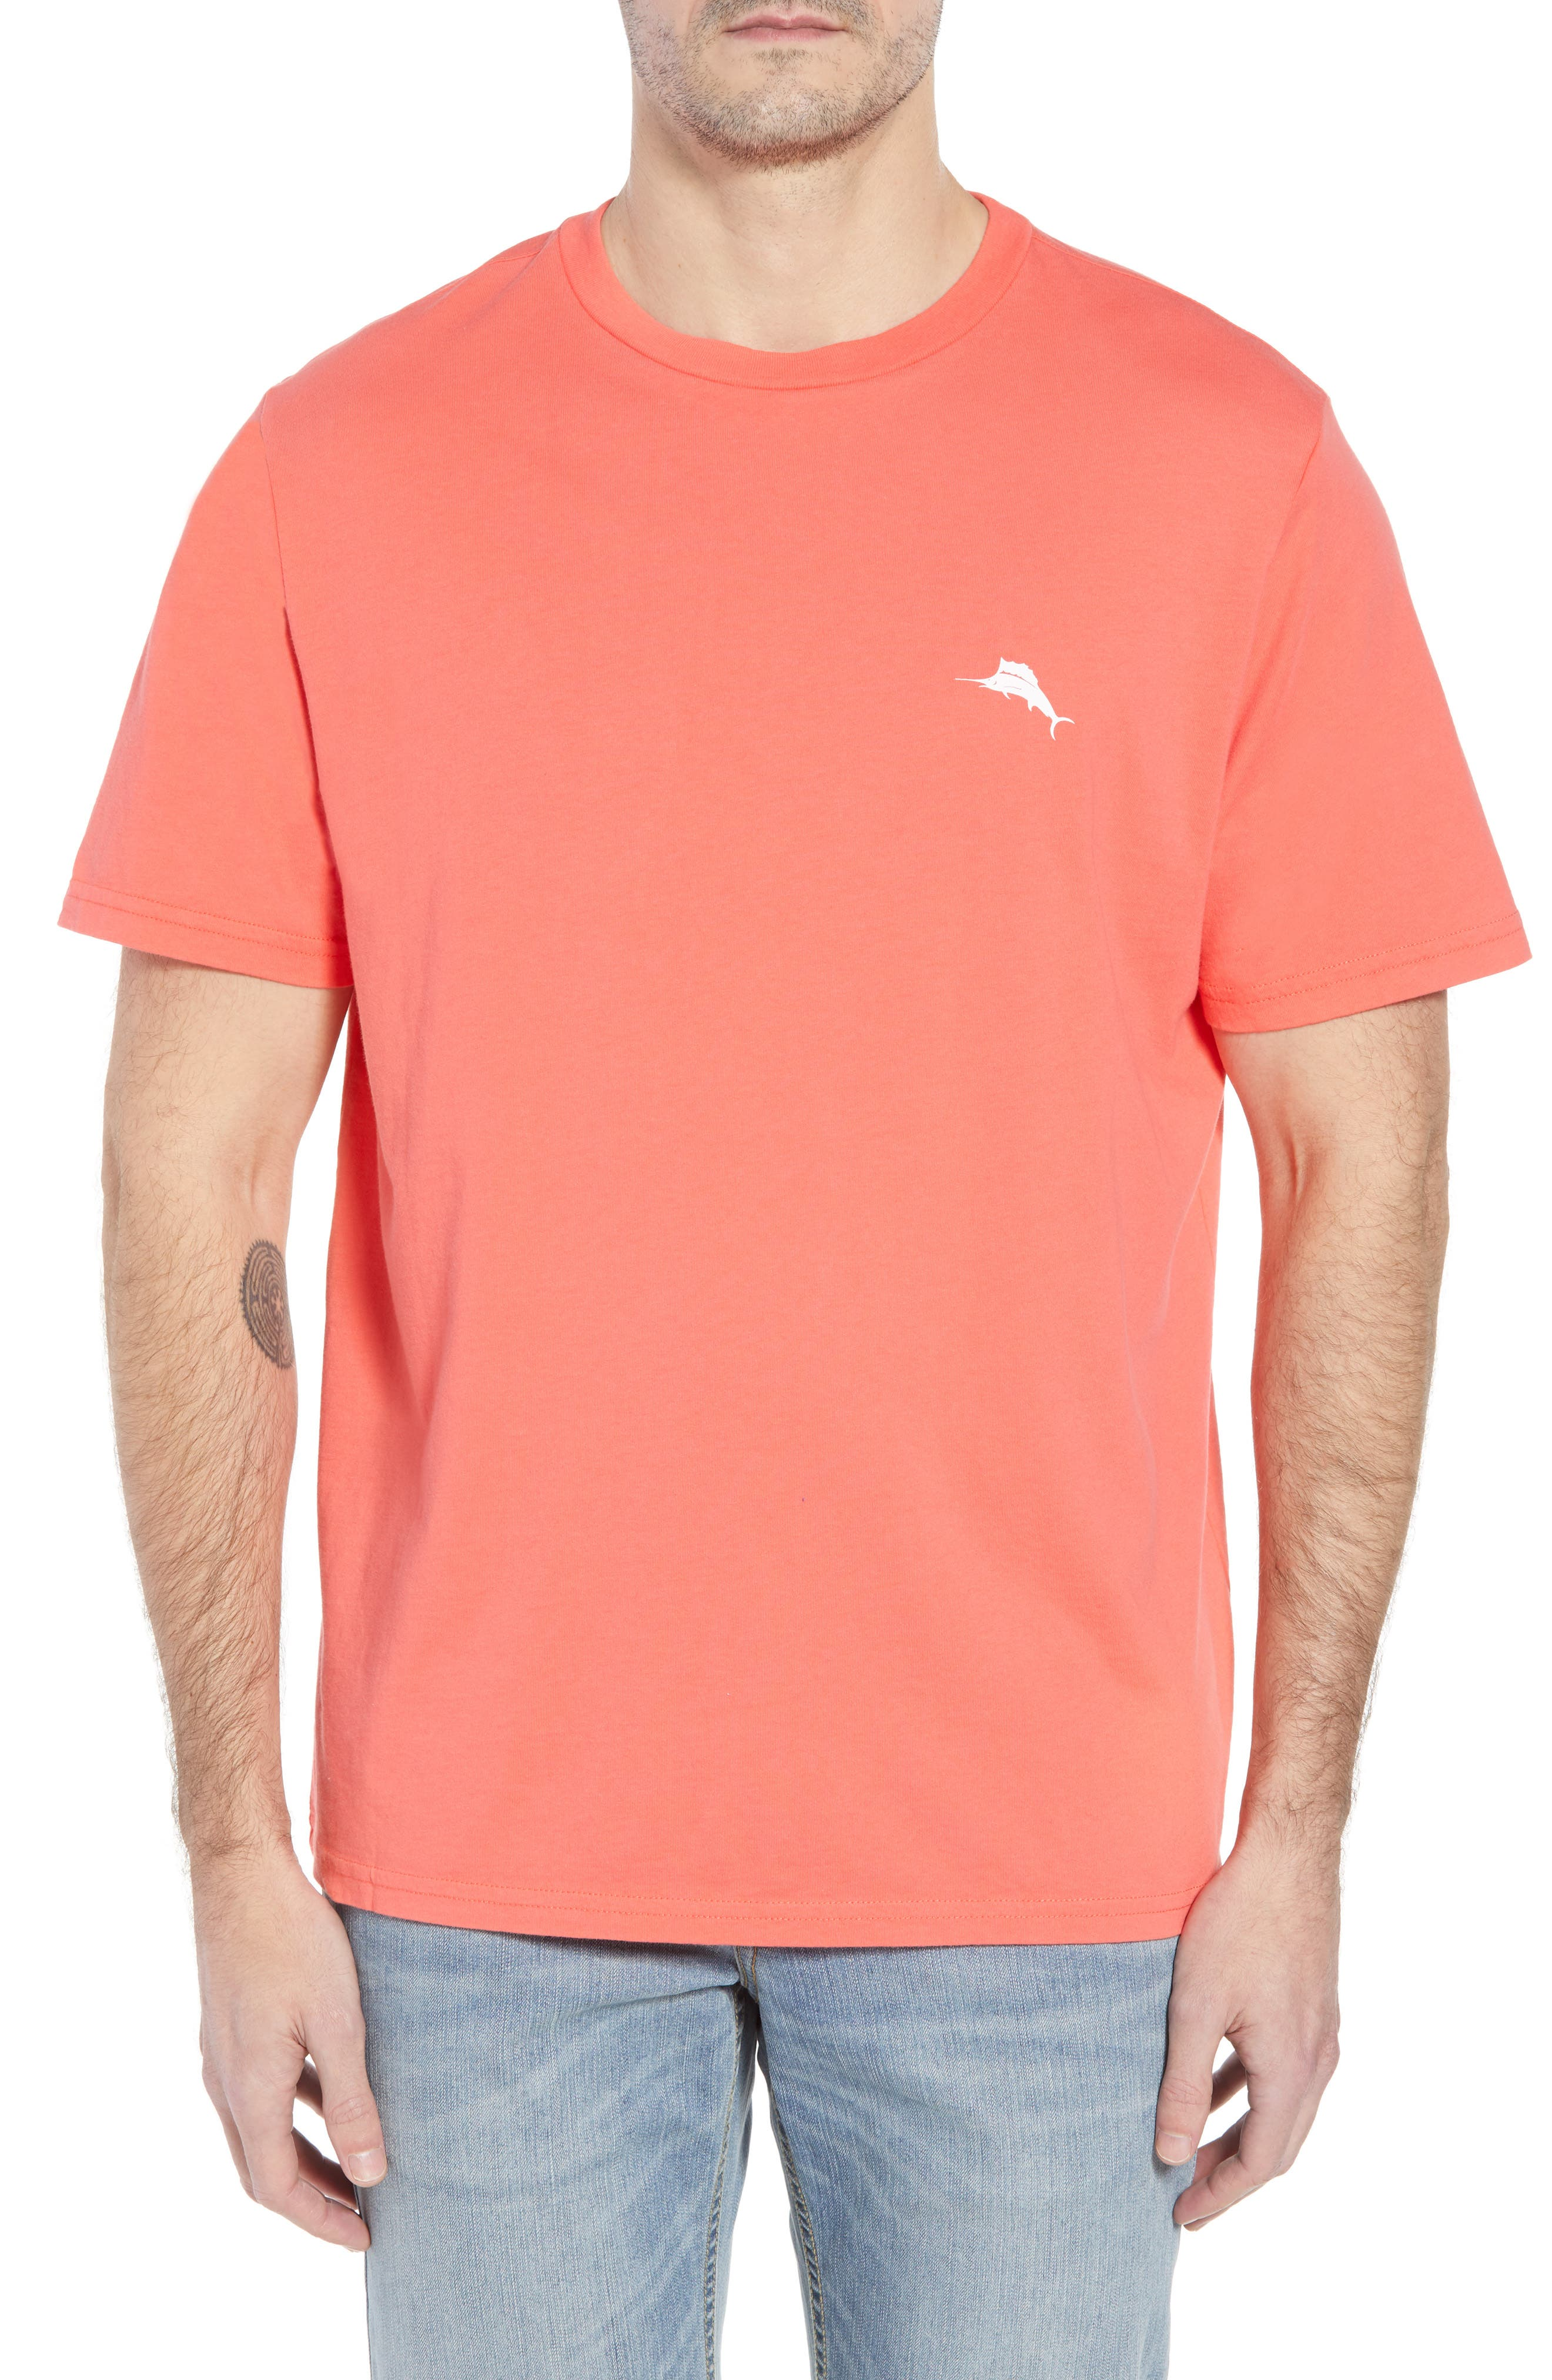 Catch the Wave Graphic T-Shirt,                             Main thumbnail 1, color,